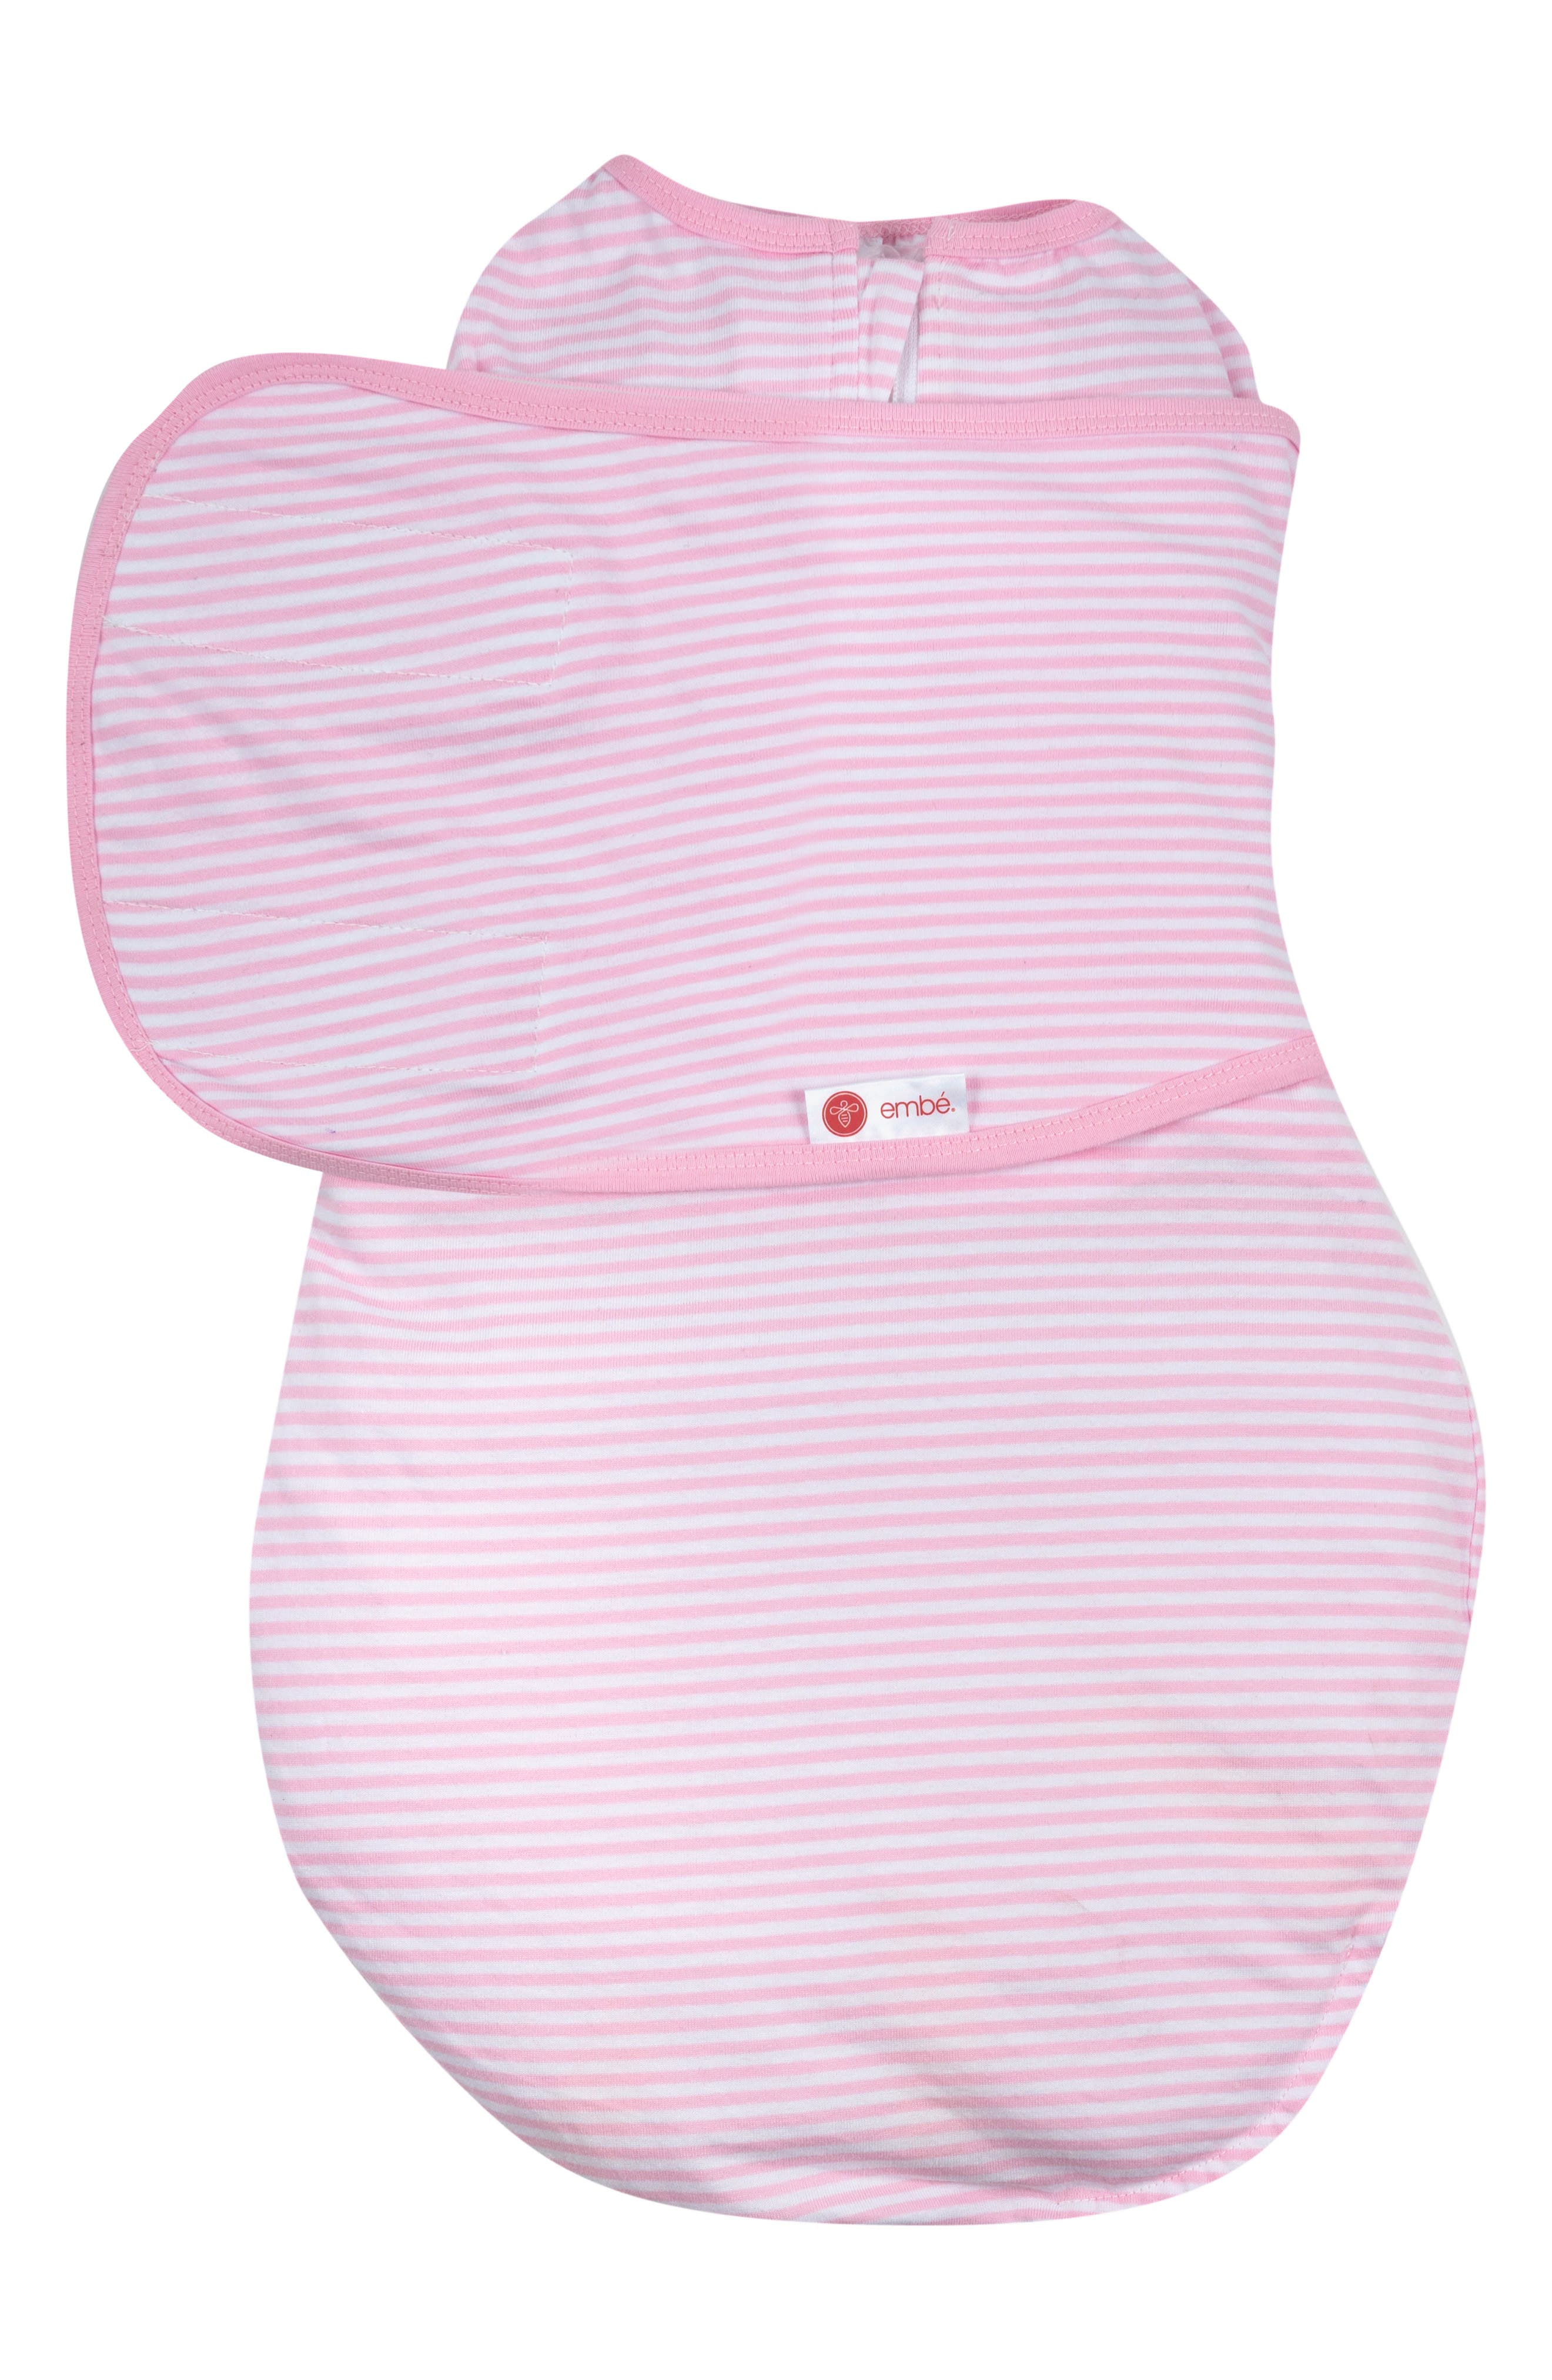 embé® 2-Way Swaddle (Baby)